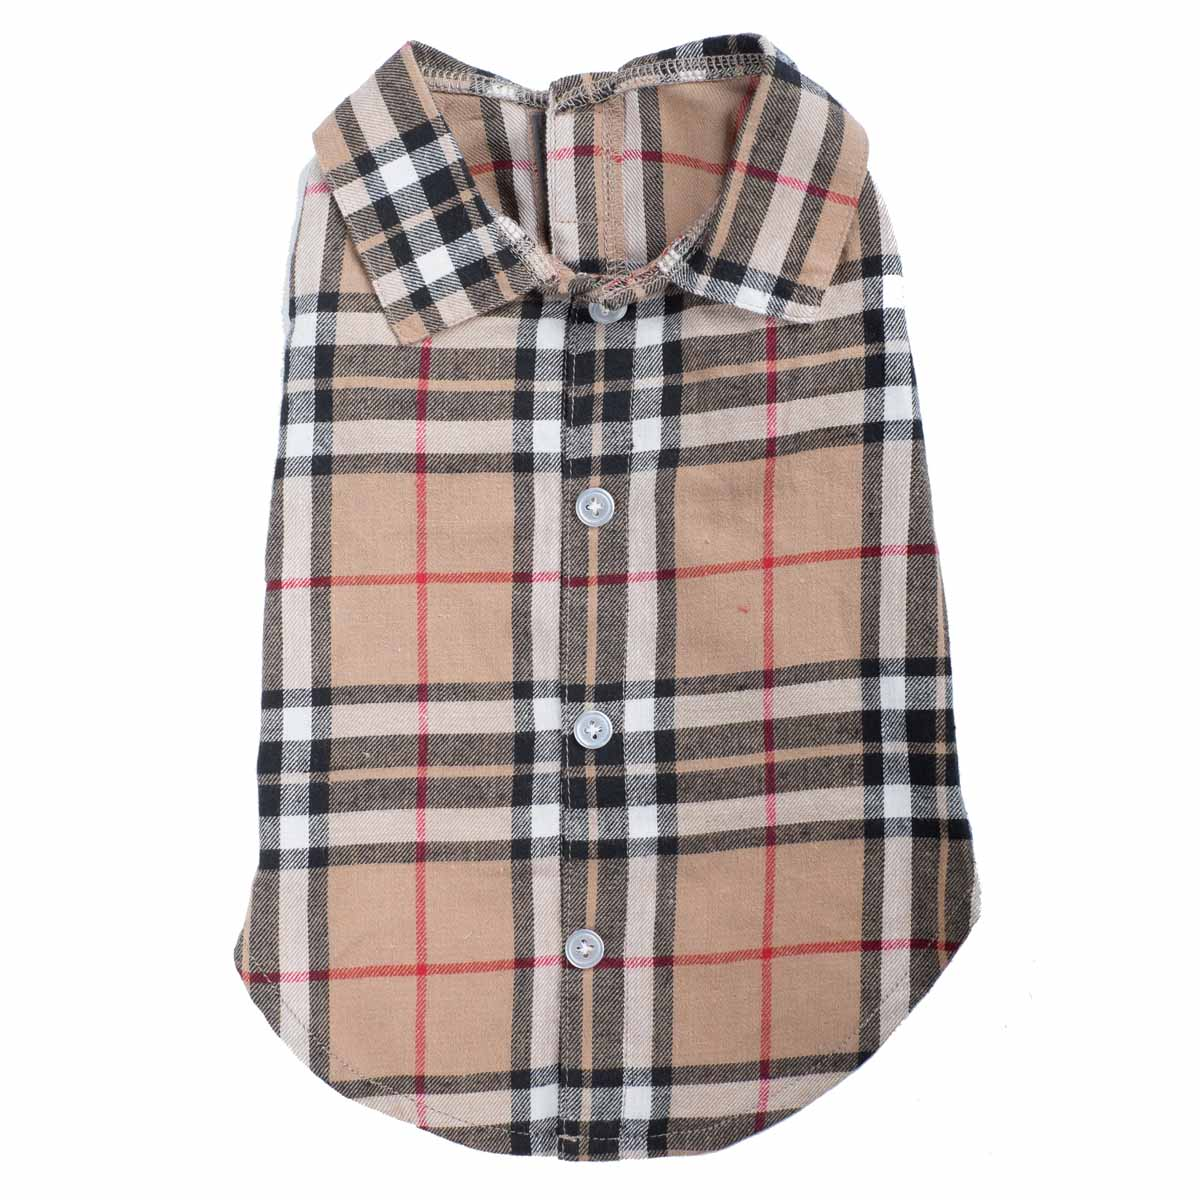 Worthy Dog Tan Plaid Dog Shirt Baxterboo